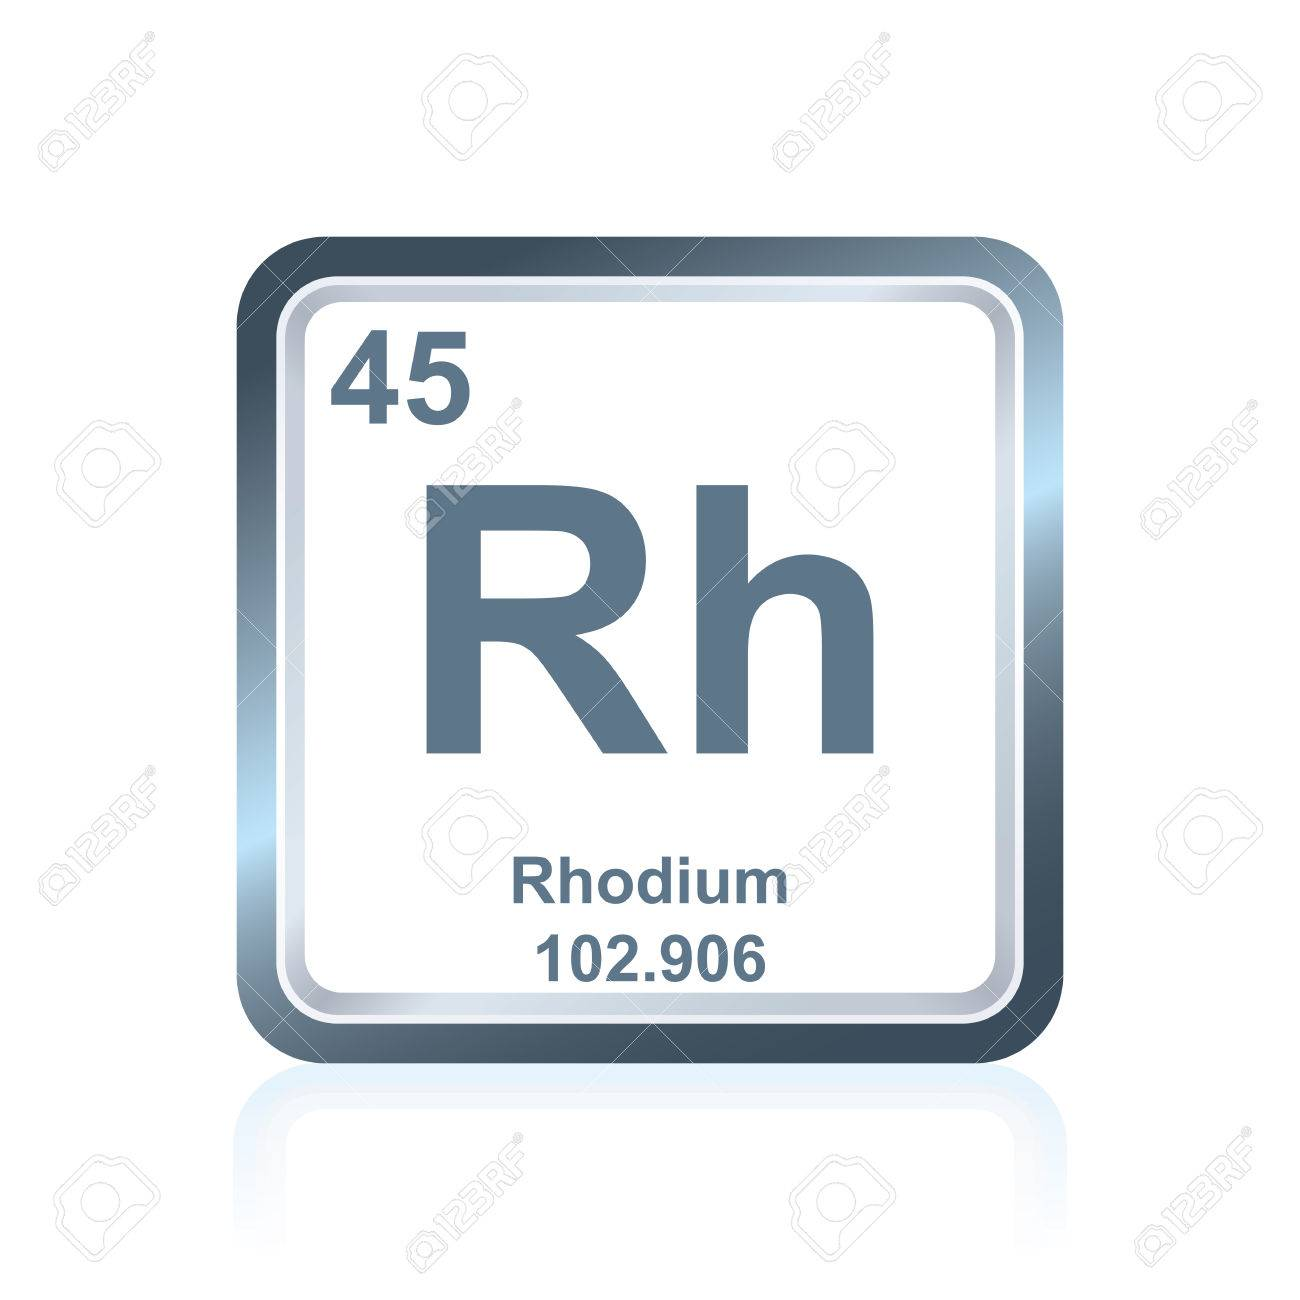 Symbol Of Chemical Element Rhodium As Seen On The Periodic Table